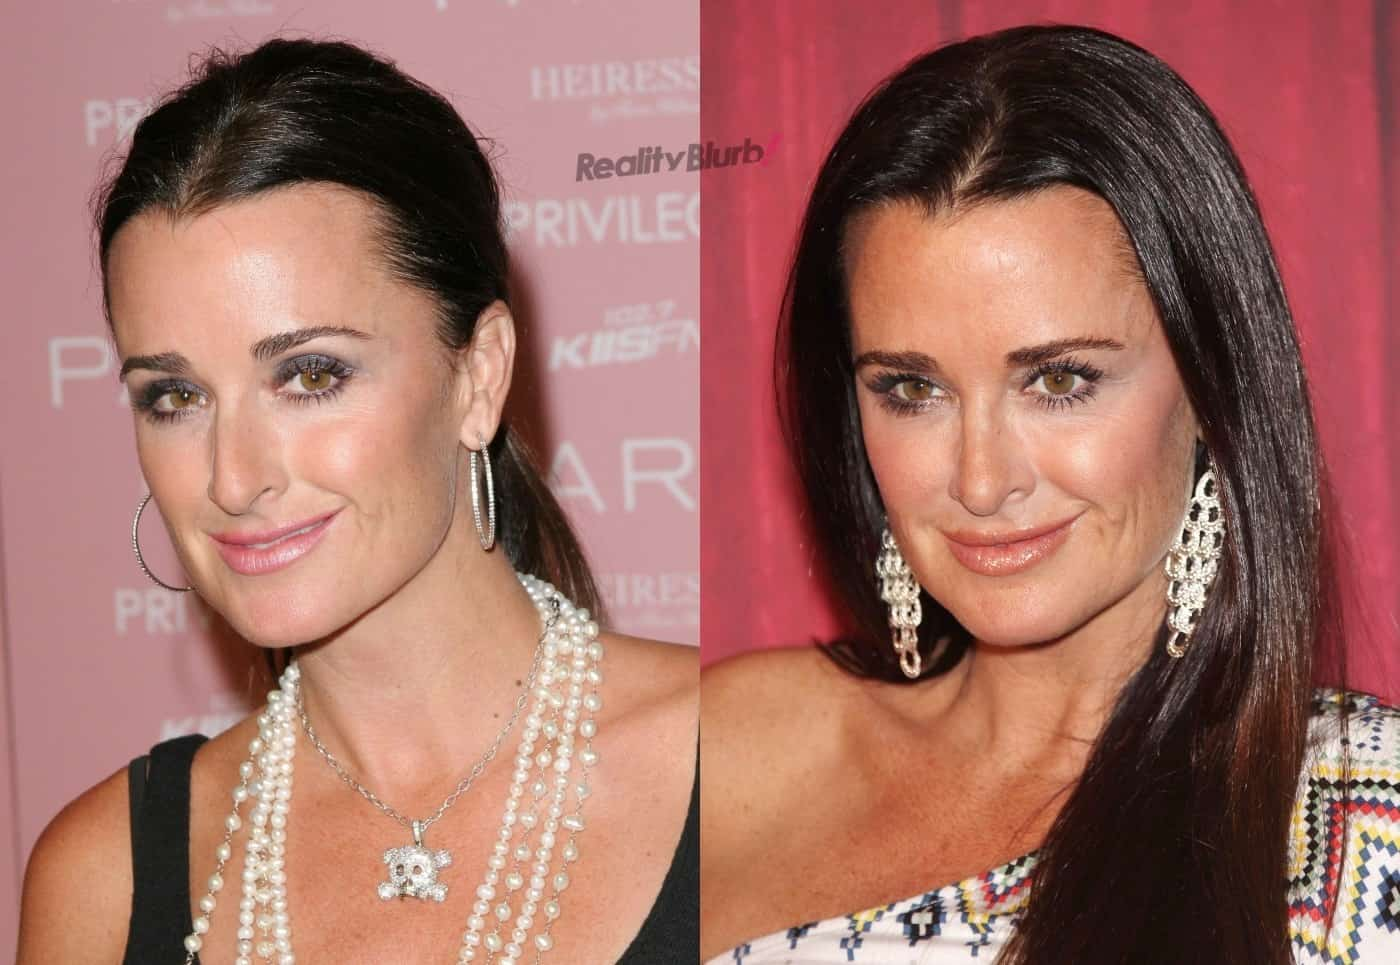 Kyle Richards Before and After Plastic Surgery